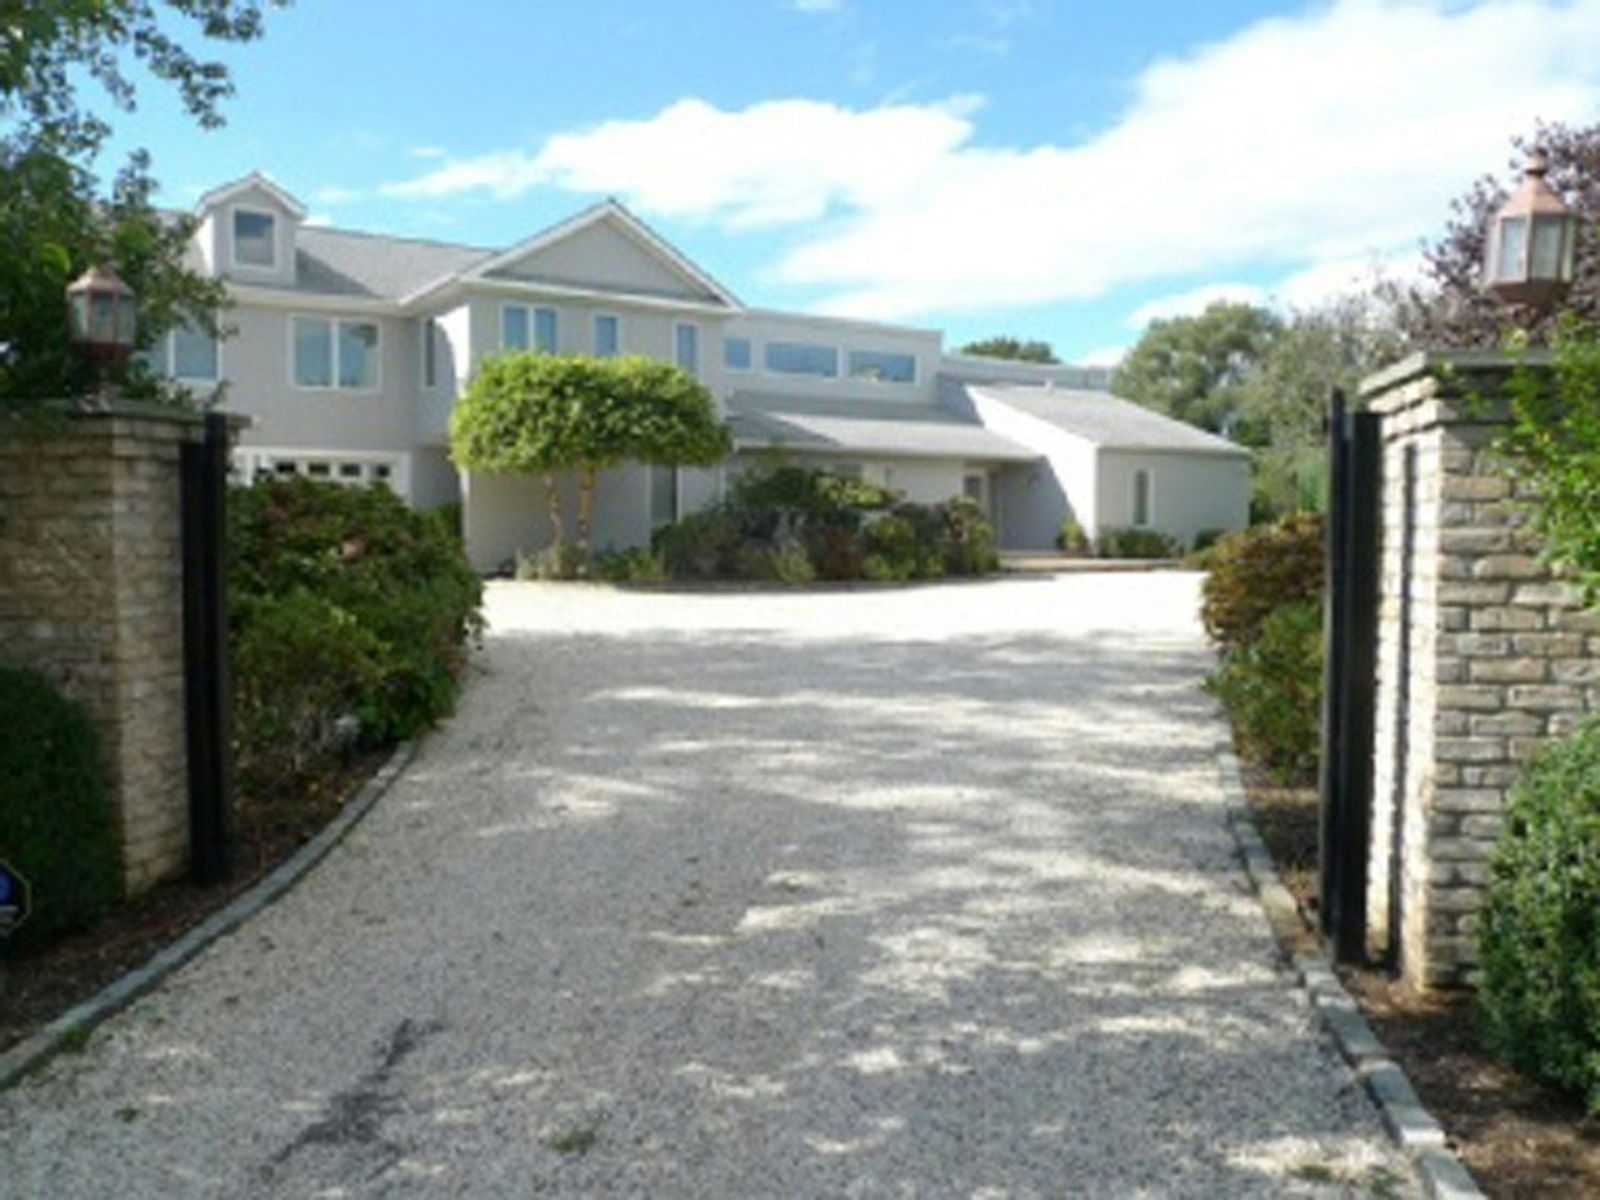 Highly Maintained Water Mill South Home, Water Mill NY Single Family Home - Hamptons Real Estate